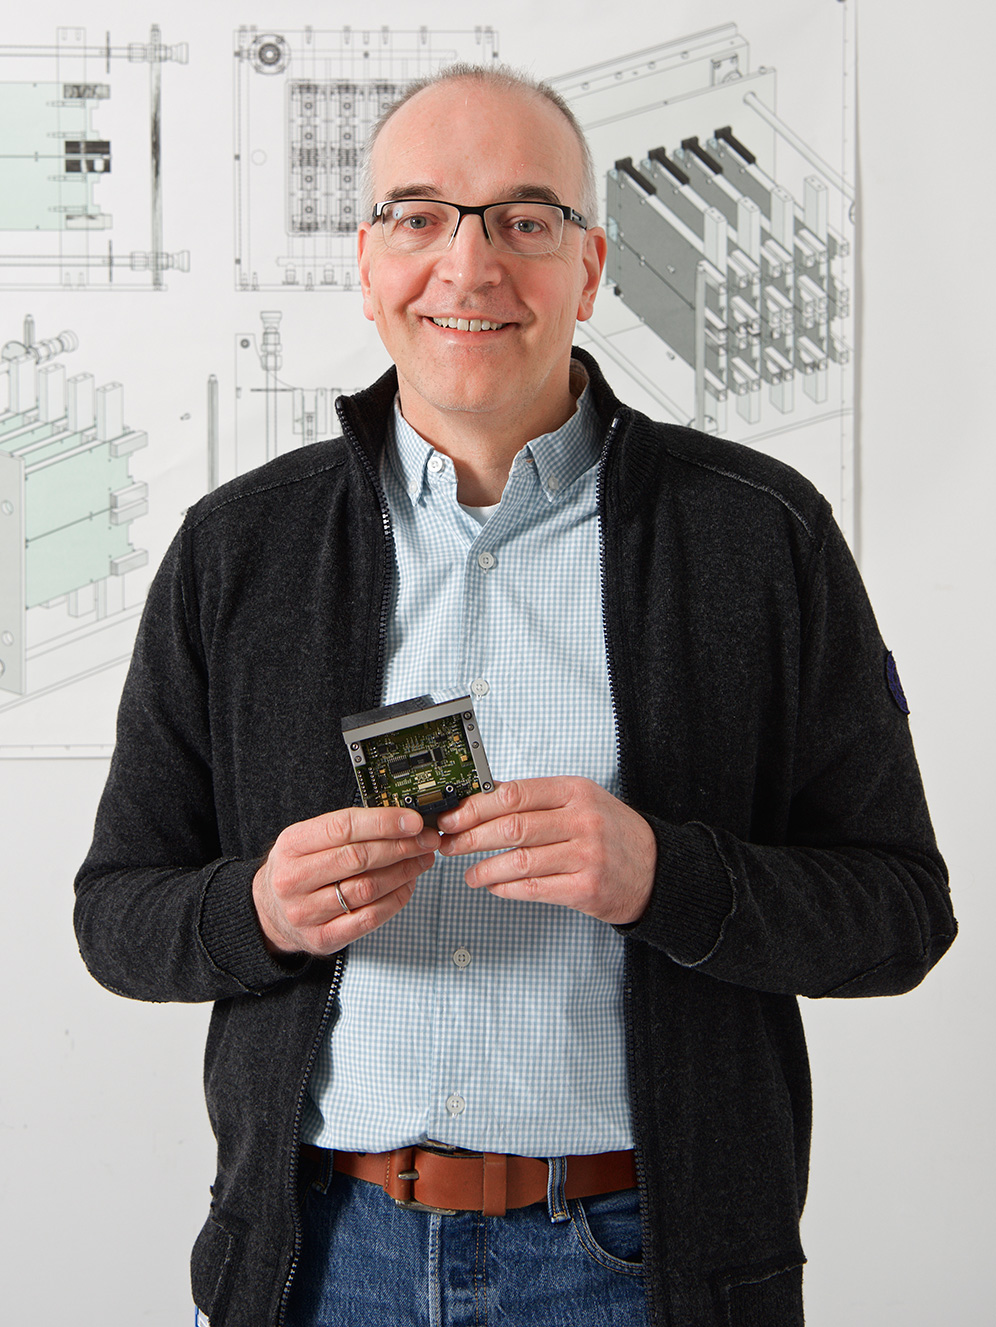 Bernd Schmitt with the module of an early PILATUS detector. Schmitt leads the research group for detector development at the Swiss Light Source SLS, one of the foremost groups worldwide in the development of X-ray detectors for large research facilities. (Photo: Paul Scherrer Institute/Markus Fischer)